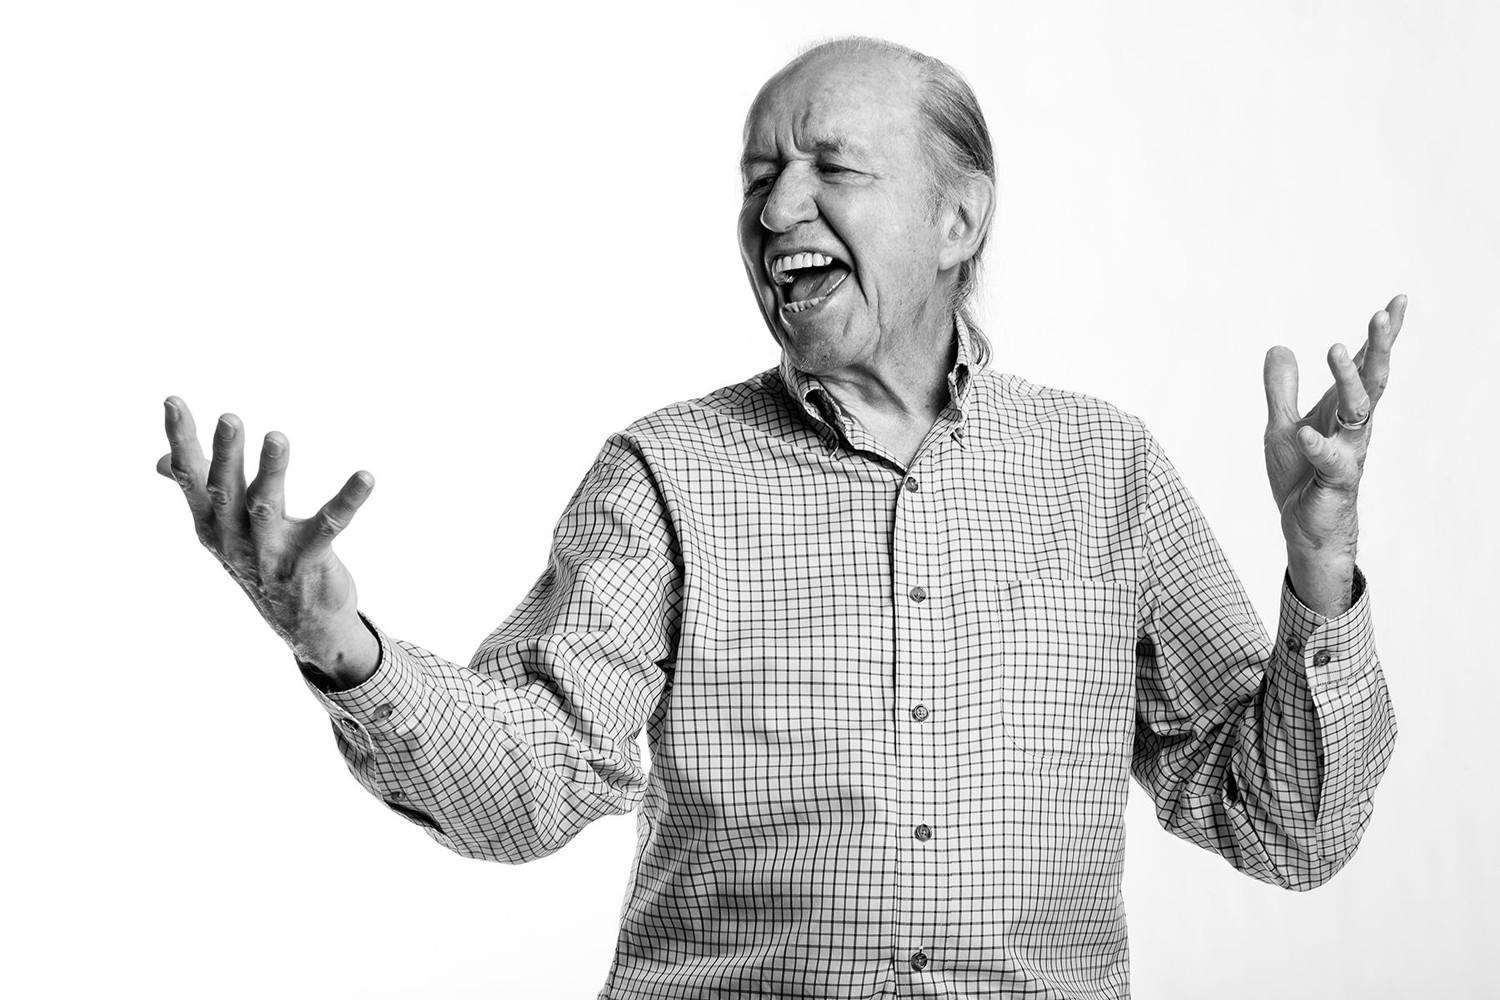 'Schoolhouse Rock' founder Bob Dorough dead at 94